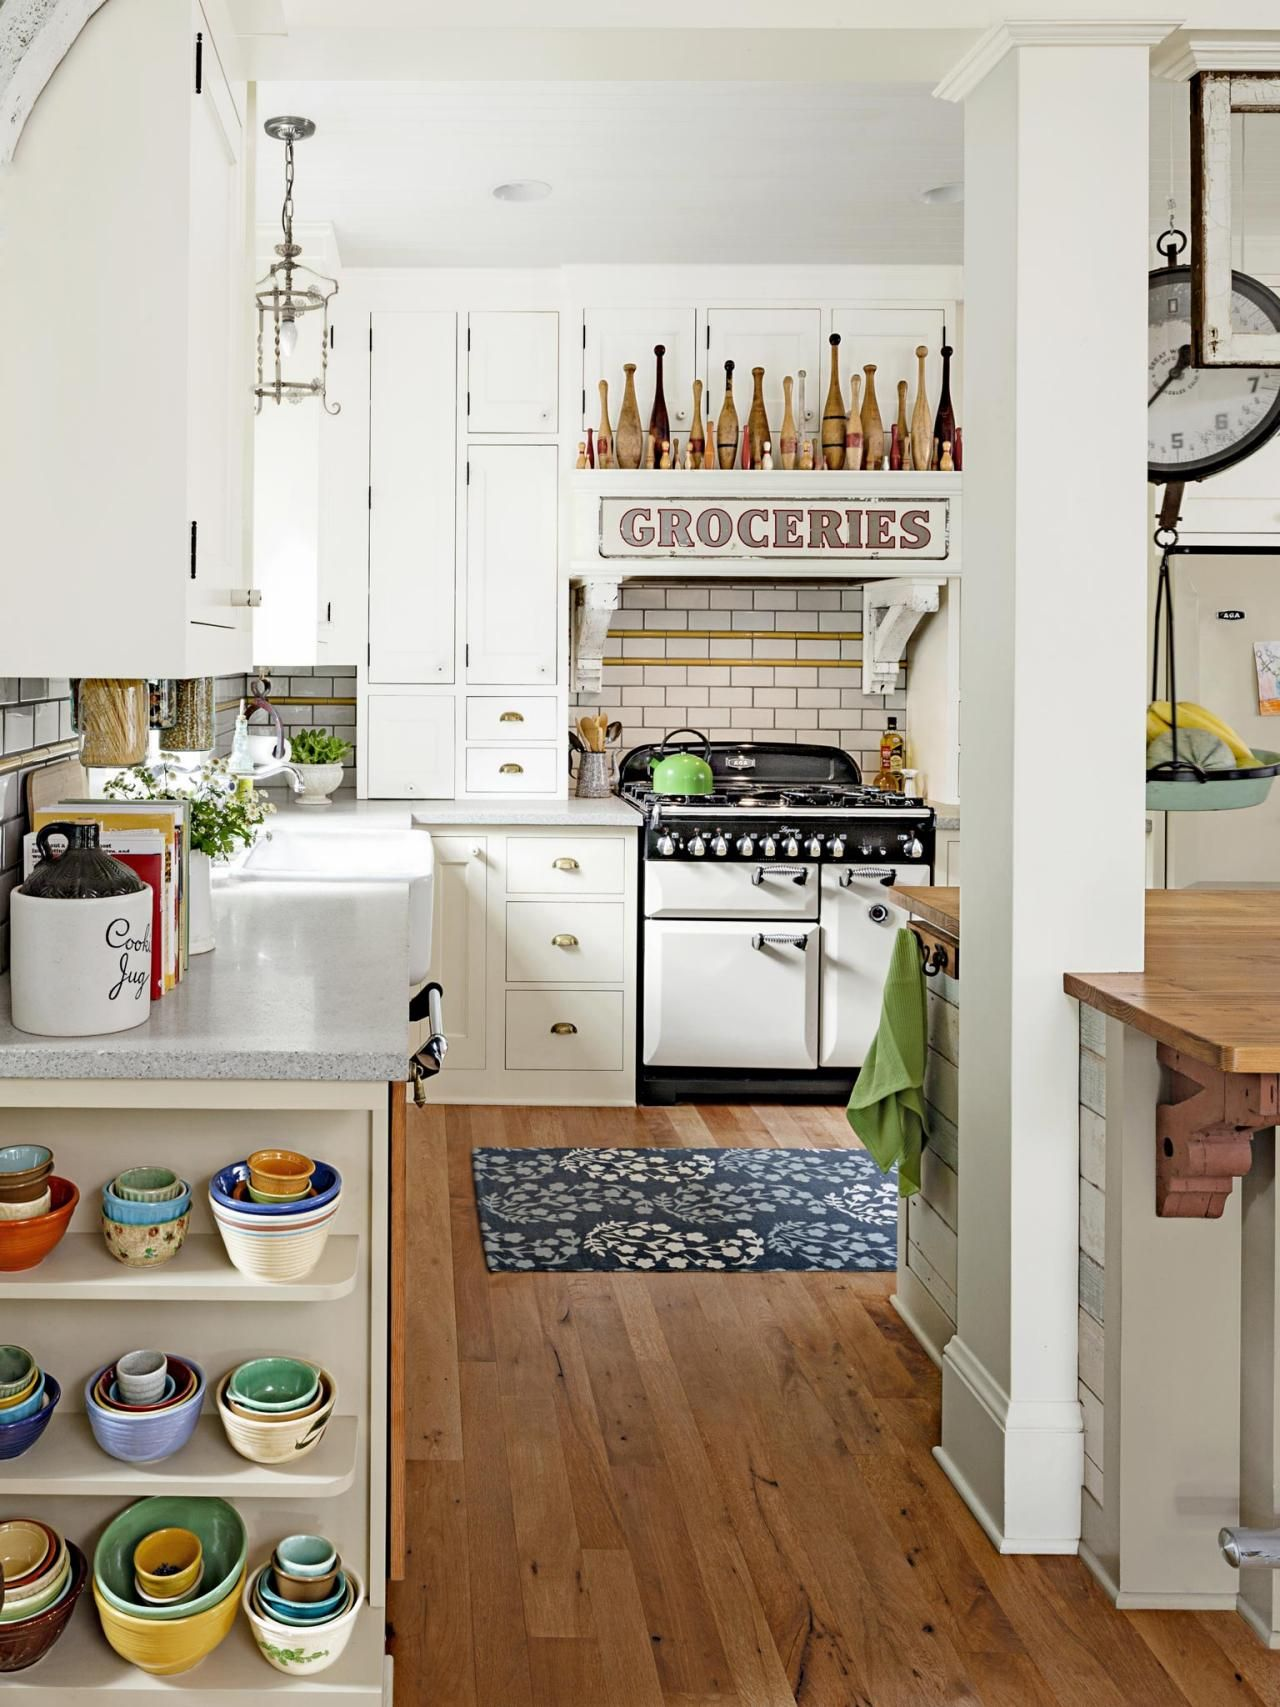 Go Green With a Recycled Kitchen | Voc paint, Hgtv and Kitchens